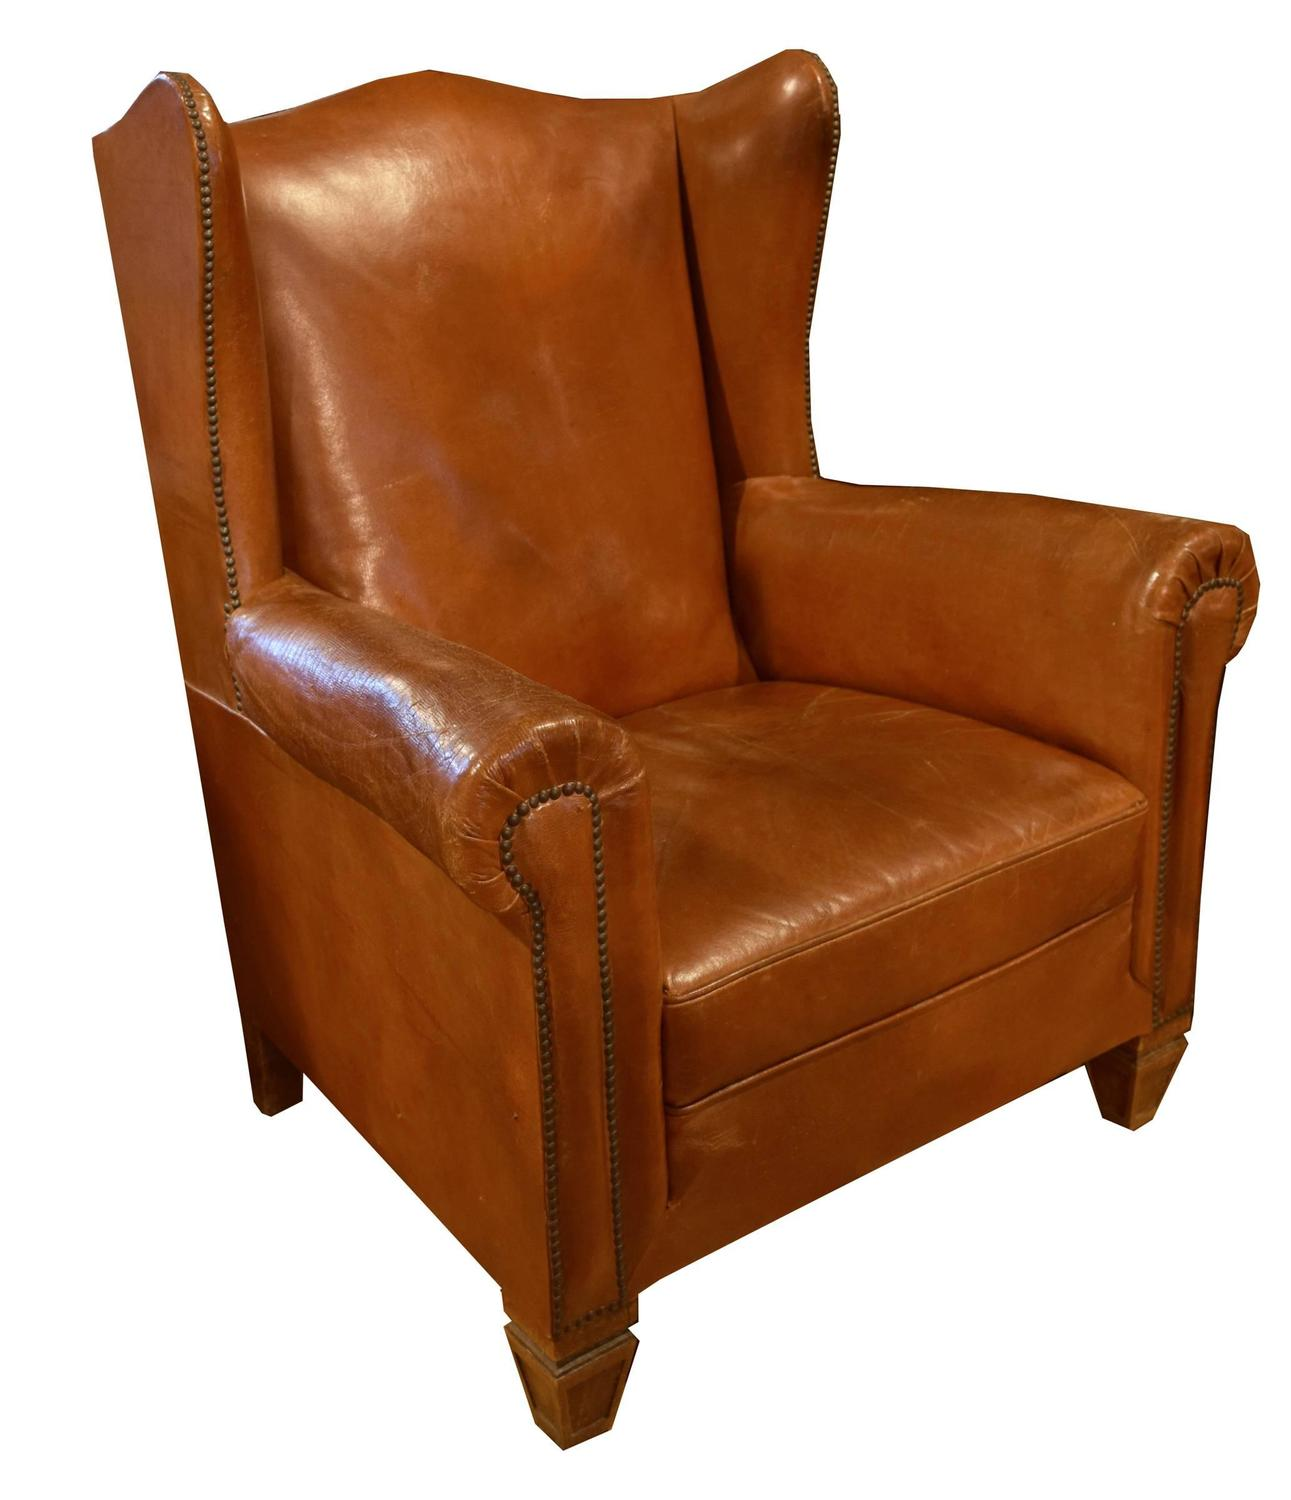 Leather Wing Back Chair Italian Leather Wingback Chair For Sale At 1stdibs